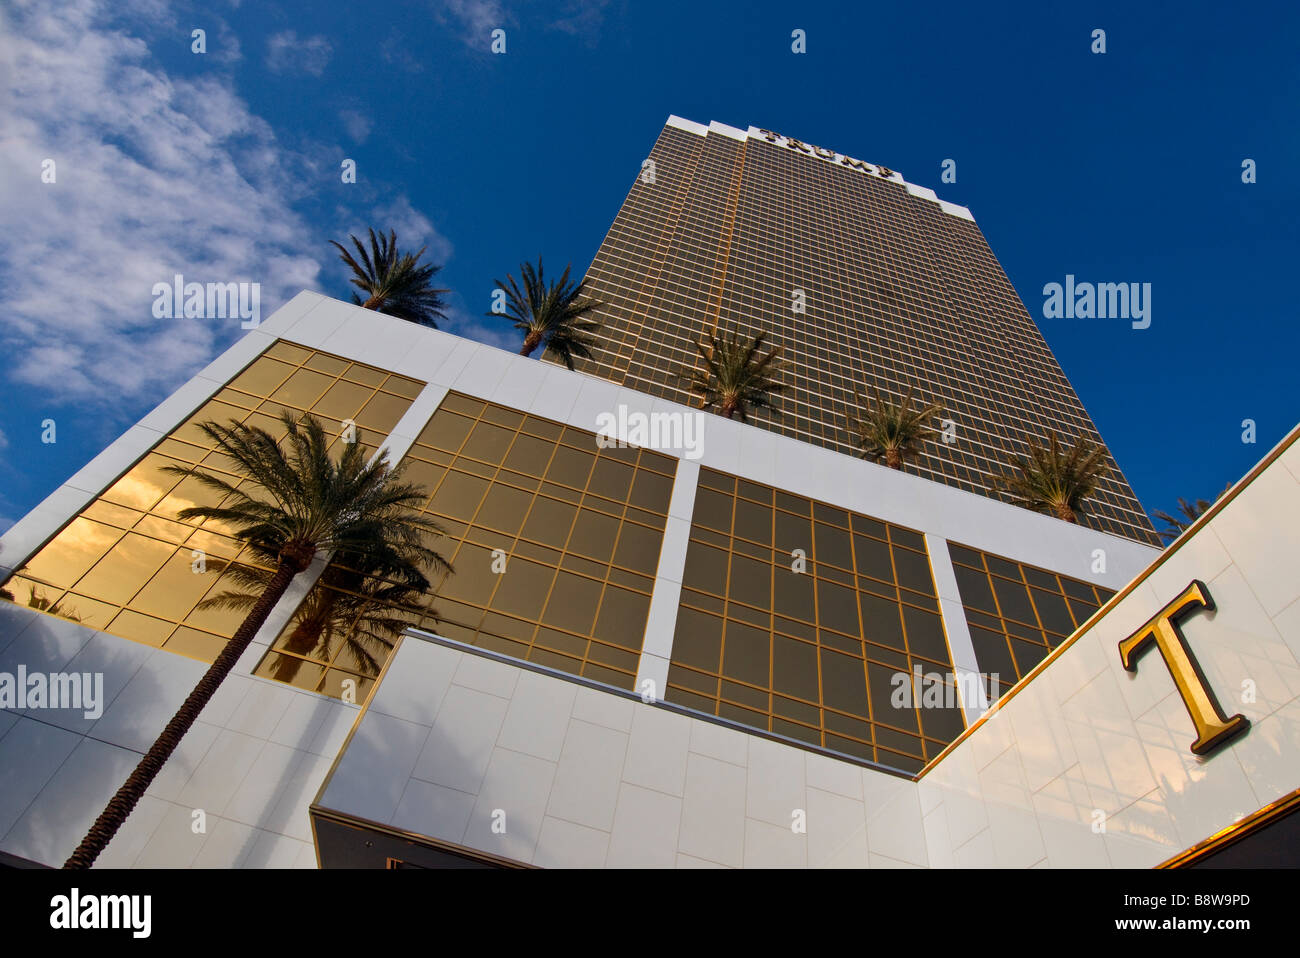 Trump tower Las Vegas - Stock Image